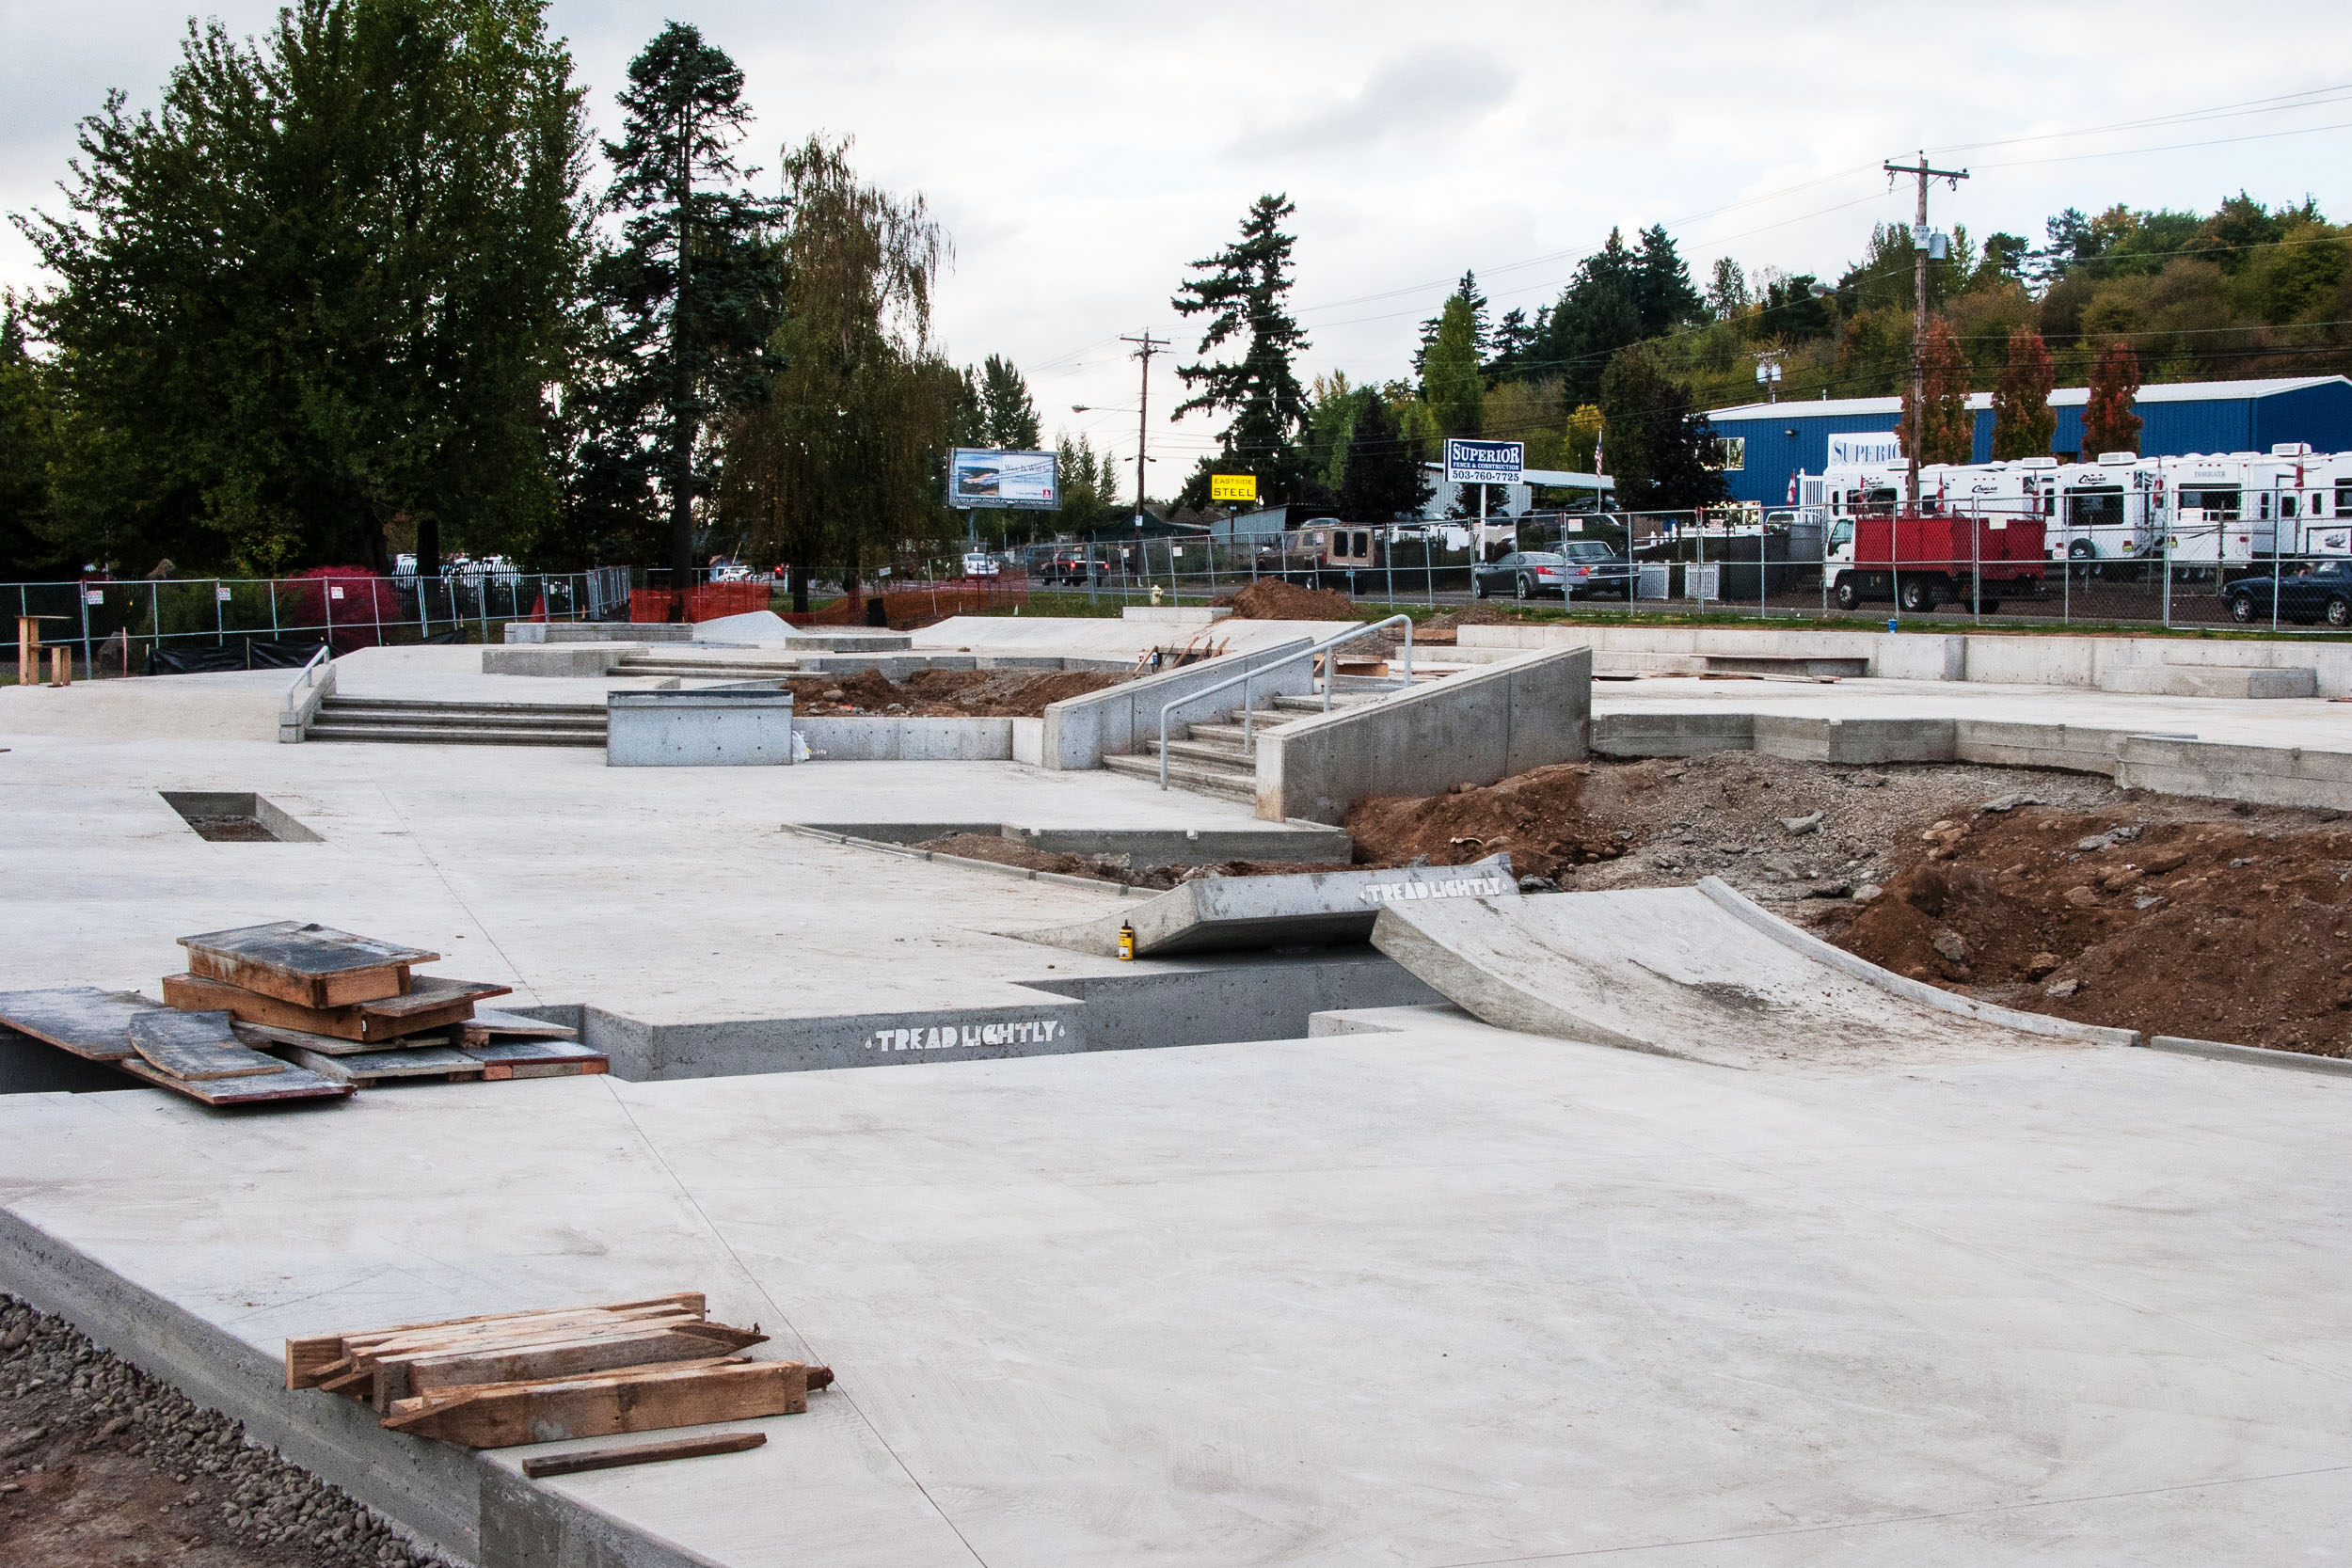 Ed Benedict Skate Plaza construction underway by New Line Skateparks.